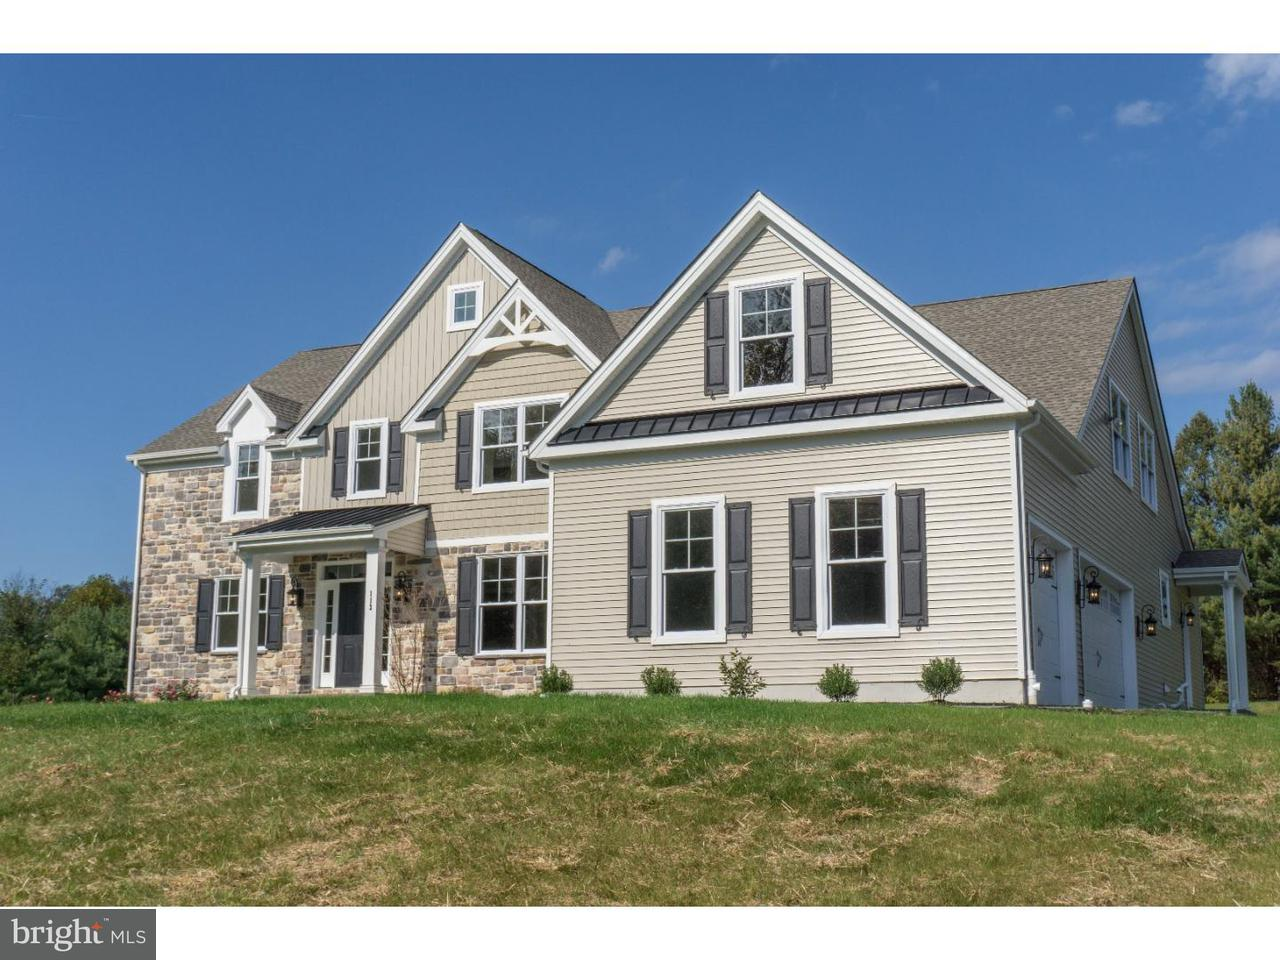 Single Family Home for Sale at 523 WEBB Road Chadds Ford, Pennsylvania 19317 United States